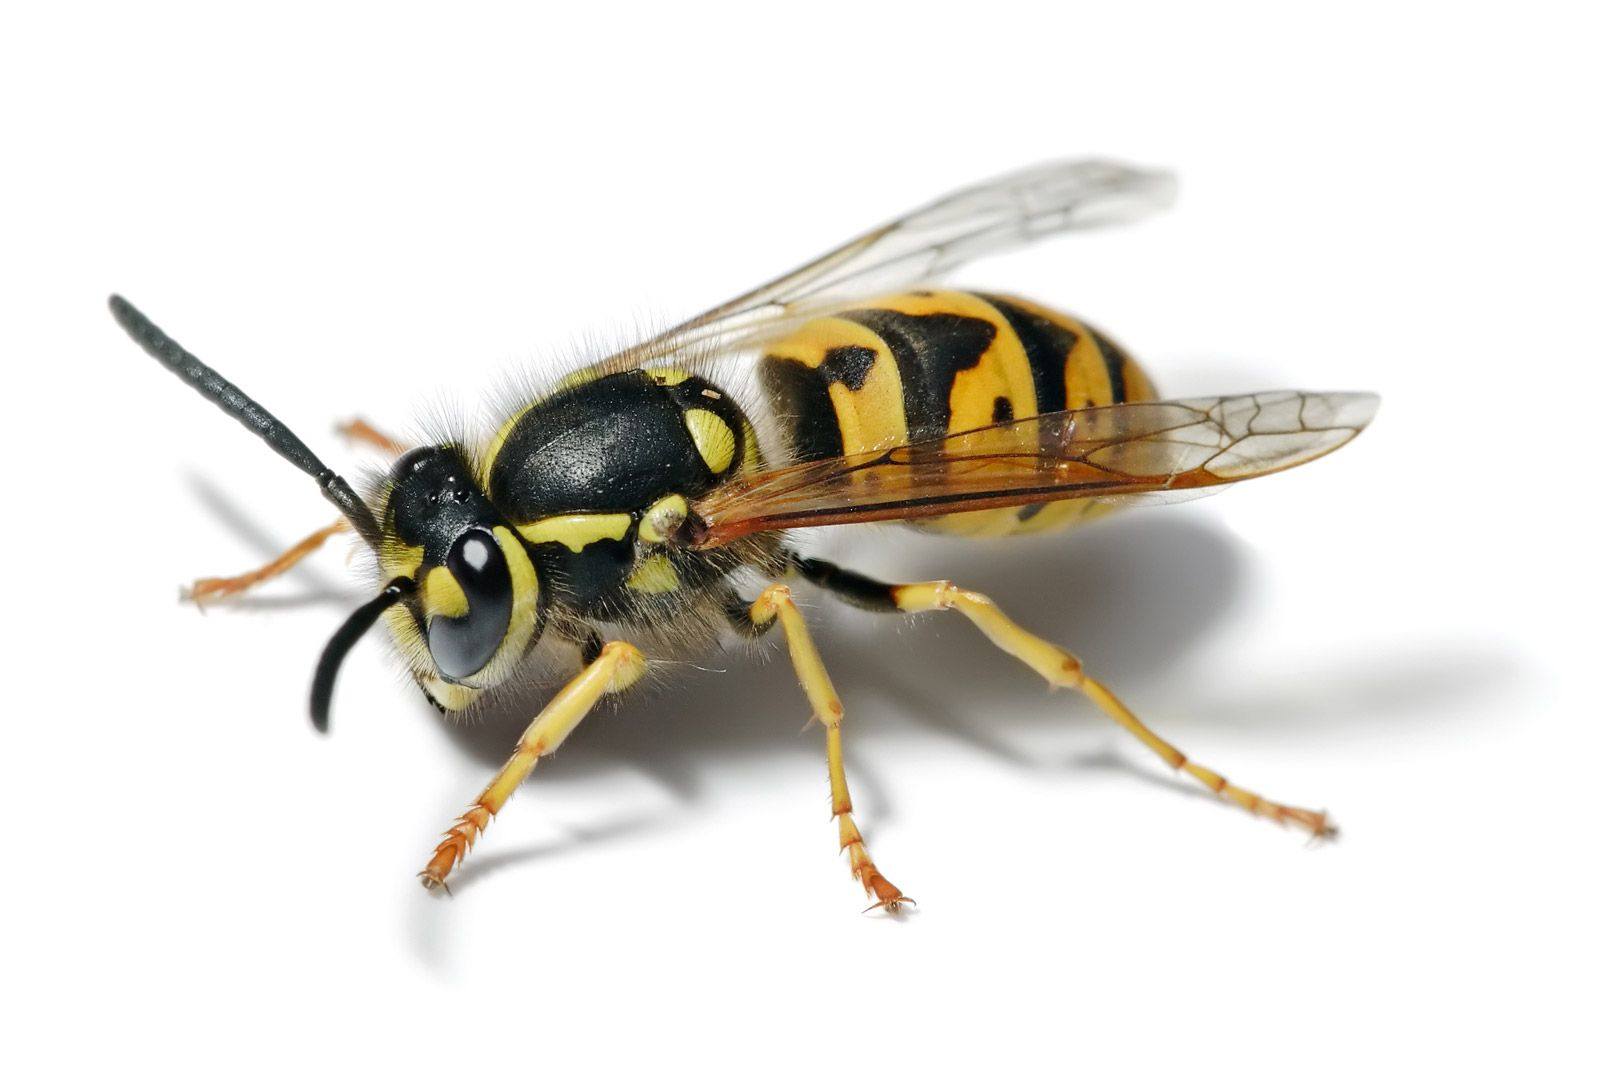 schmidt sting pain index album on imgur pinterest wasp insects and bee. Black Bedroom Furniture Sets. Home Design Ideas